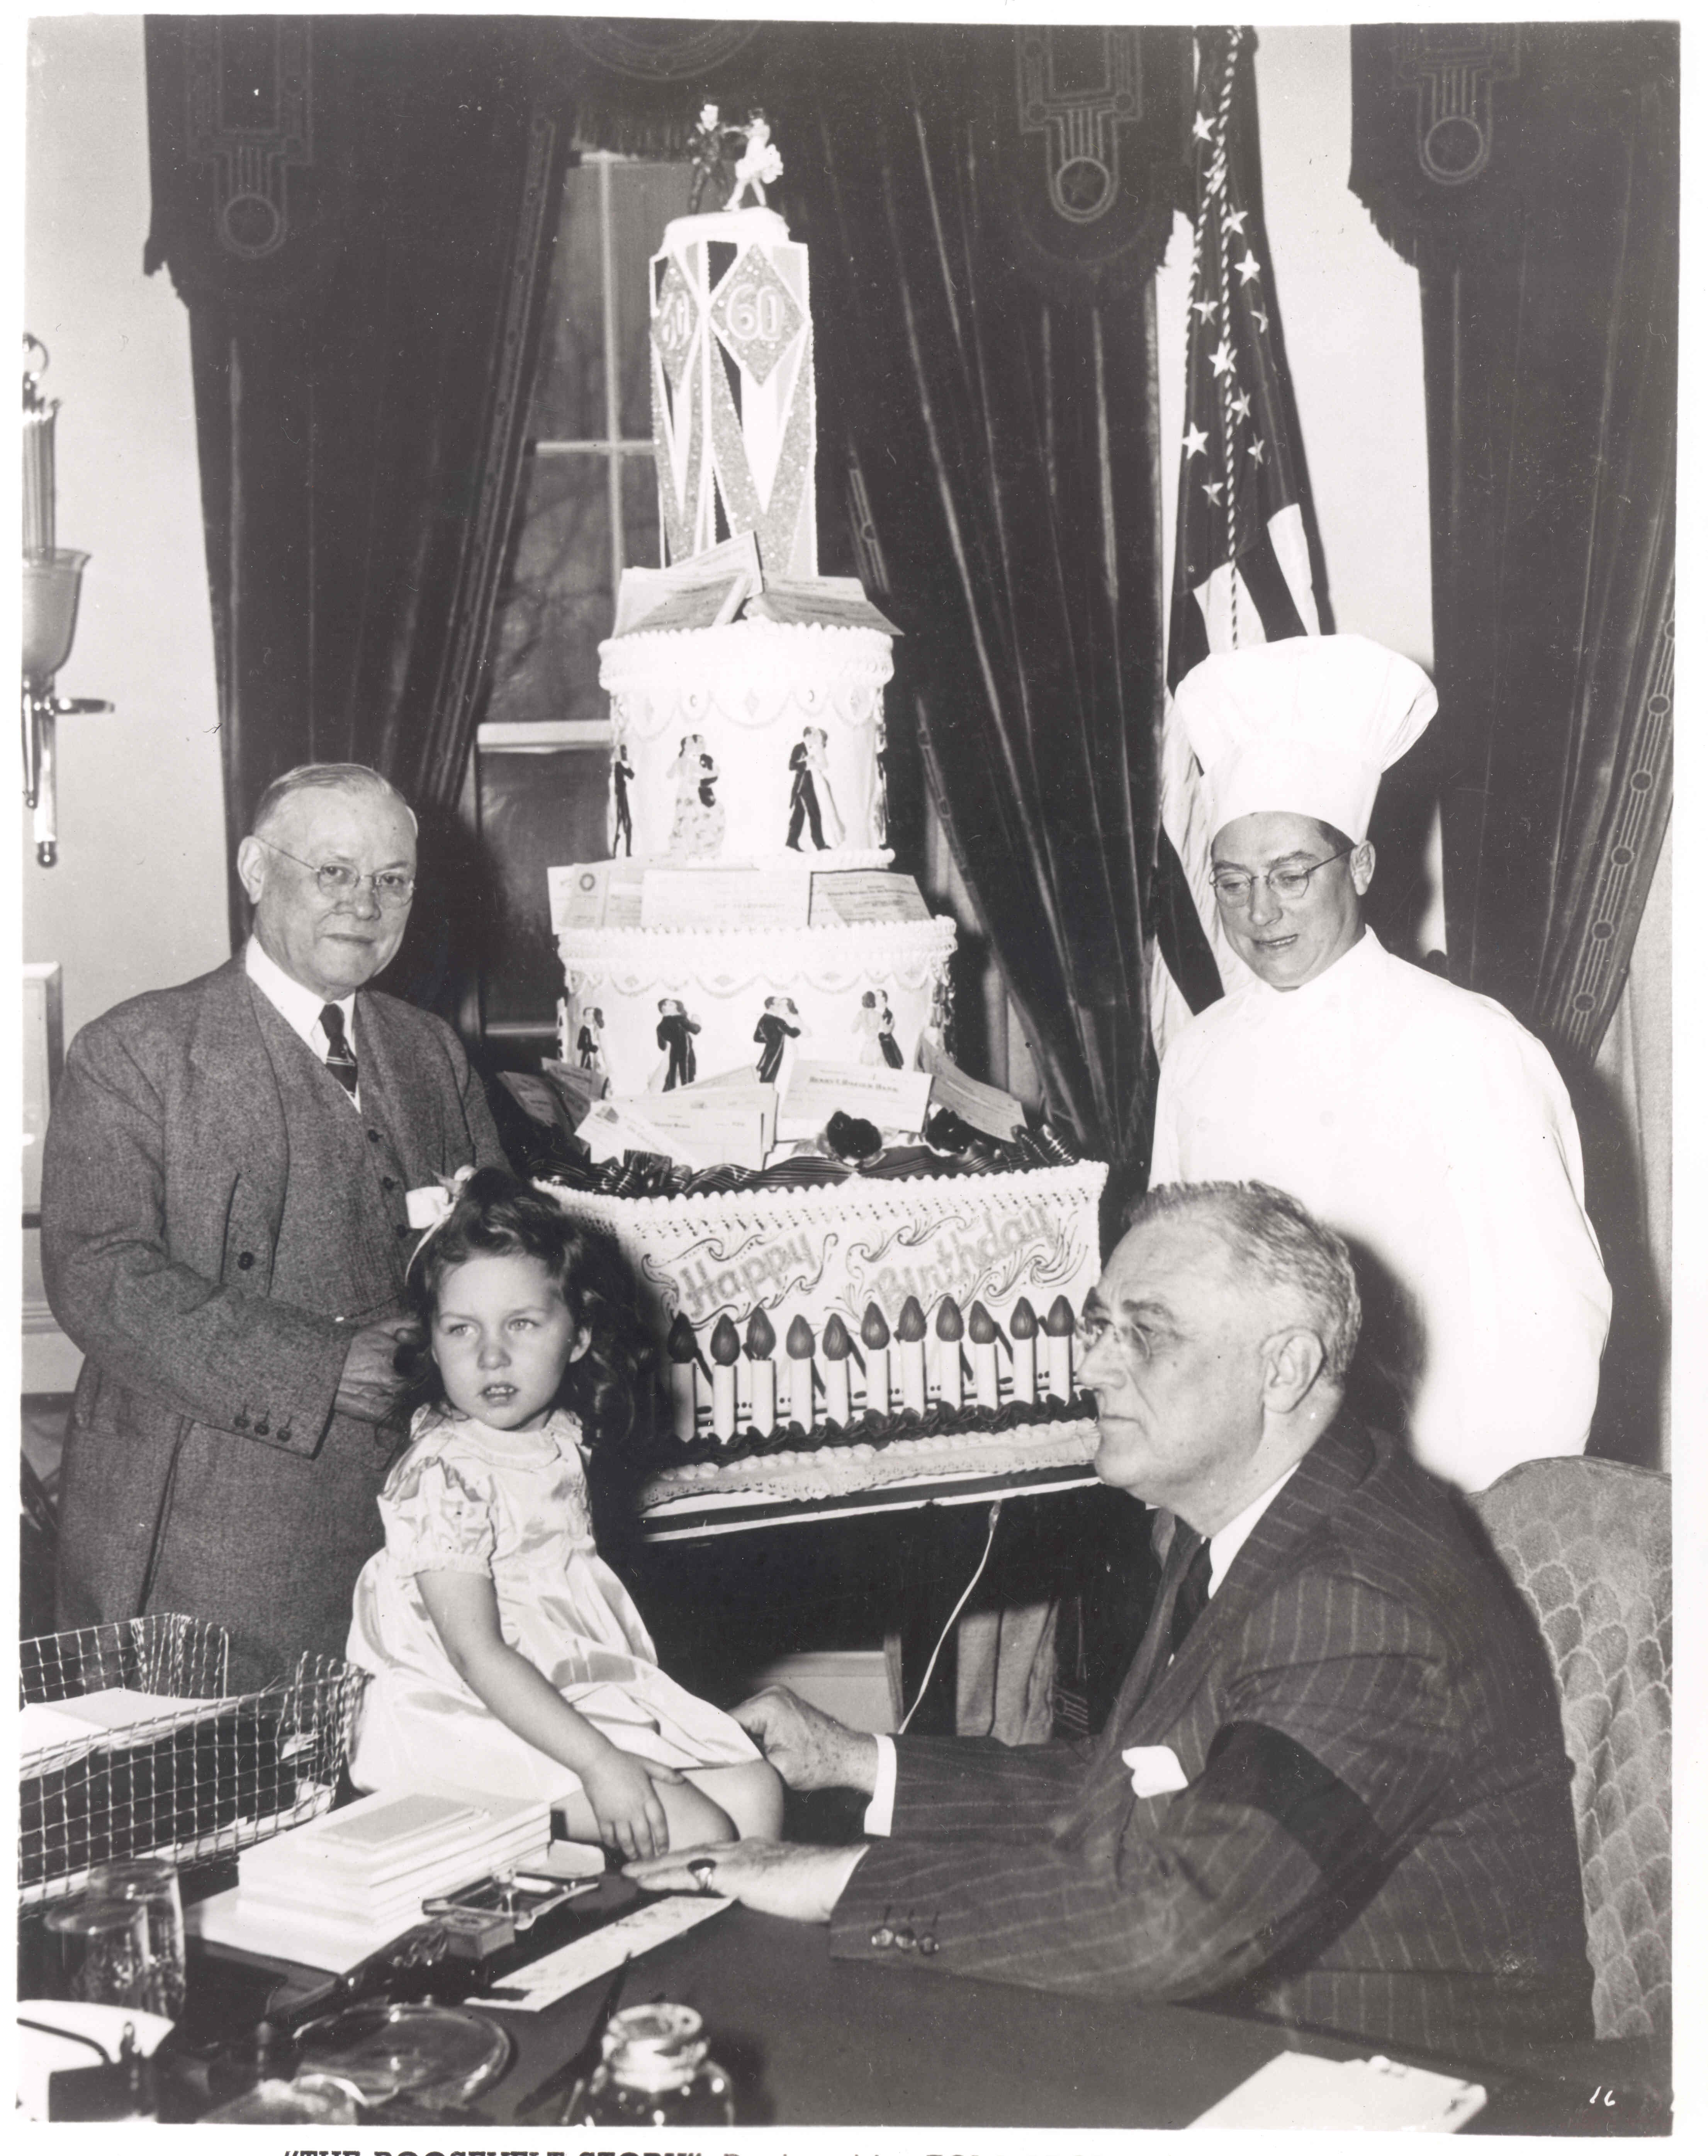 the national foundation for infantile paralysis essay Salk's efforts were supported and promoted by the national foundation for infantile paralysis and its president basil o'connor when the vaccine was approved for general use in 1955, salk became a.